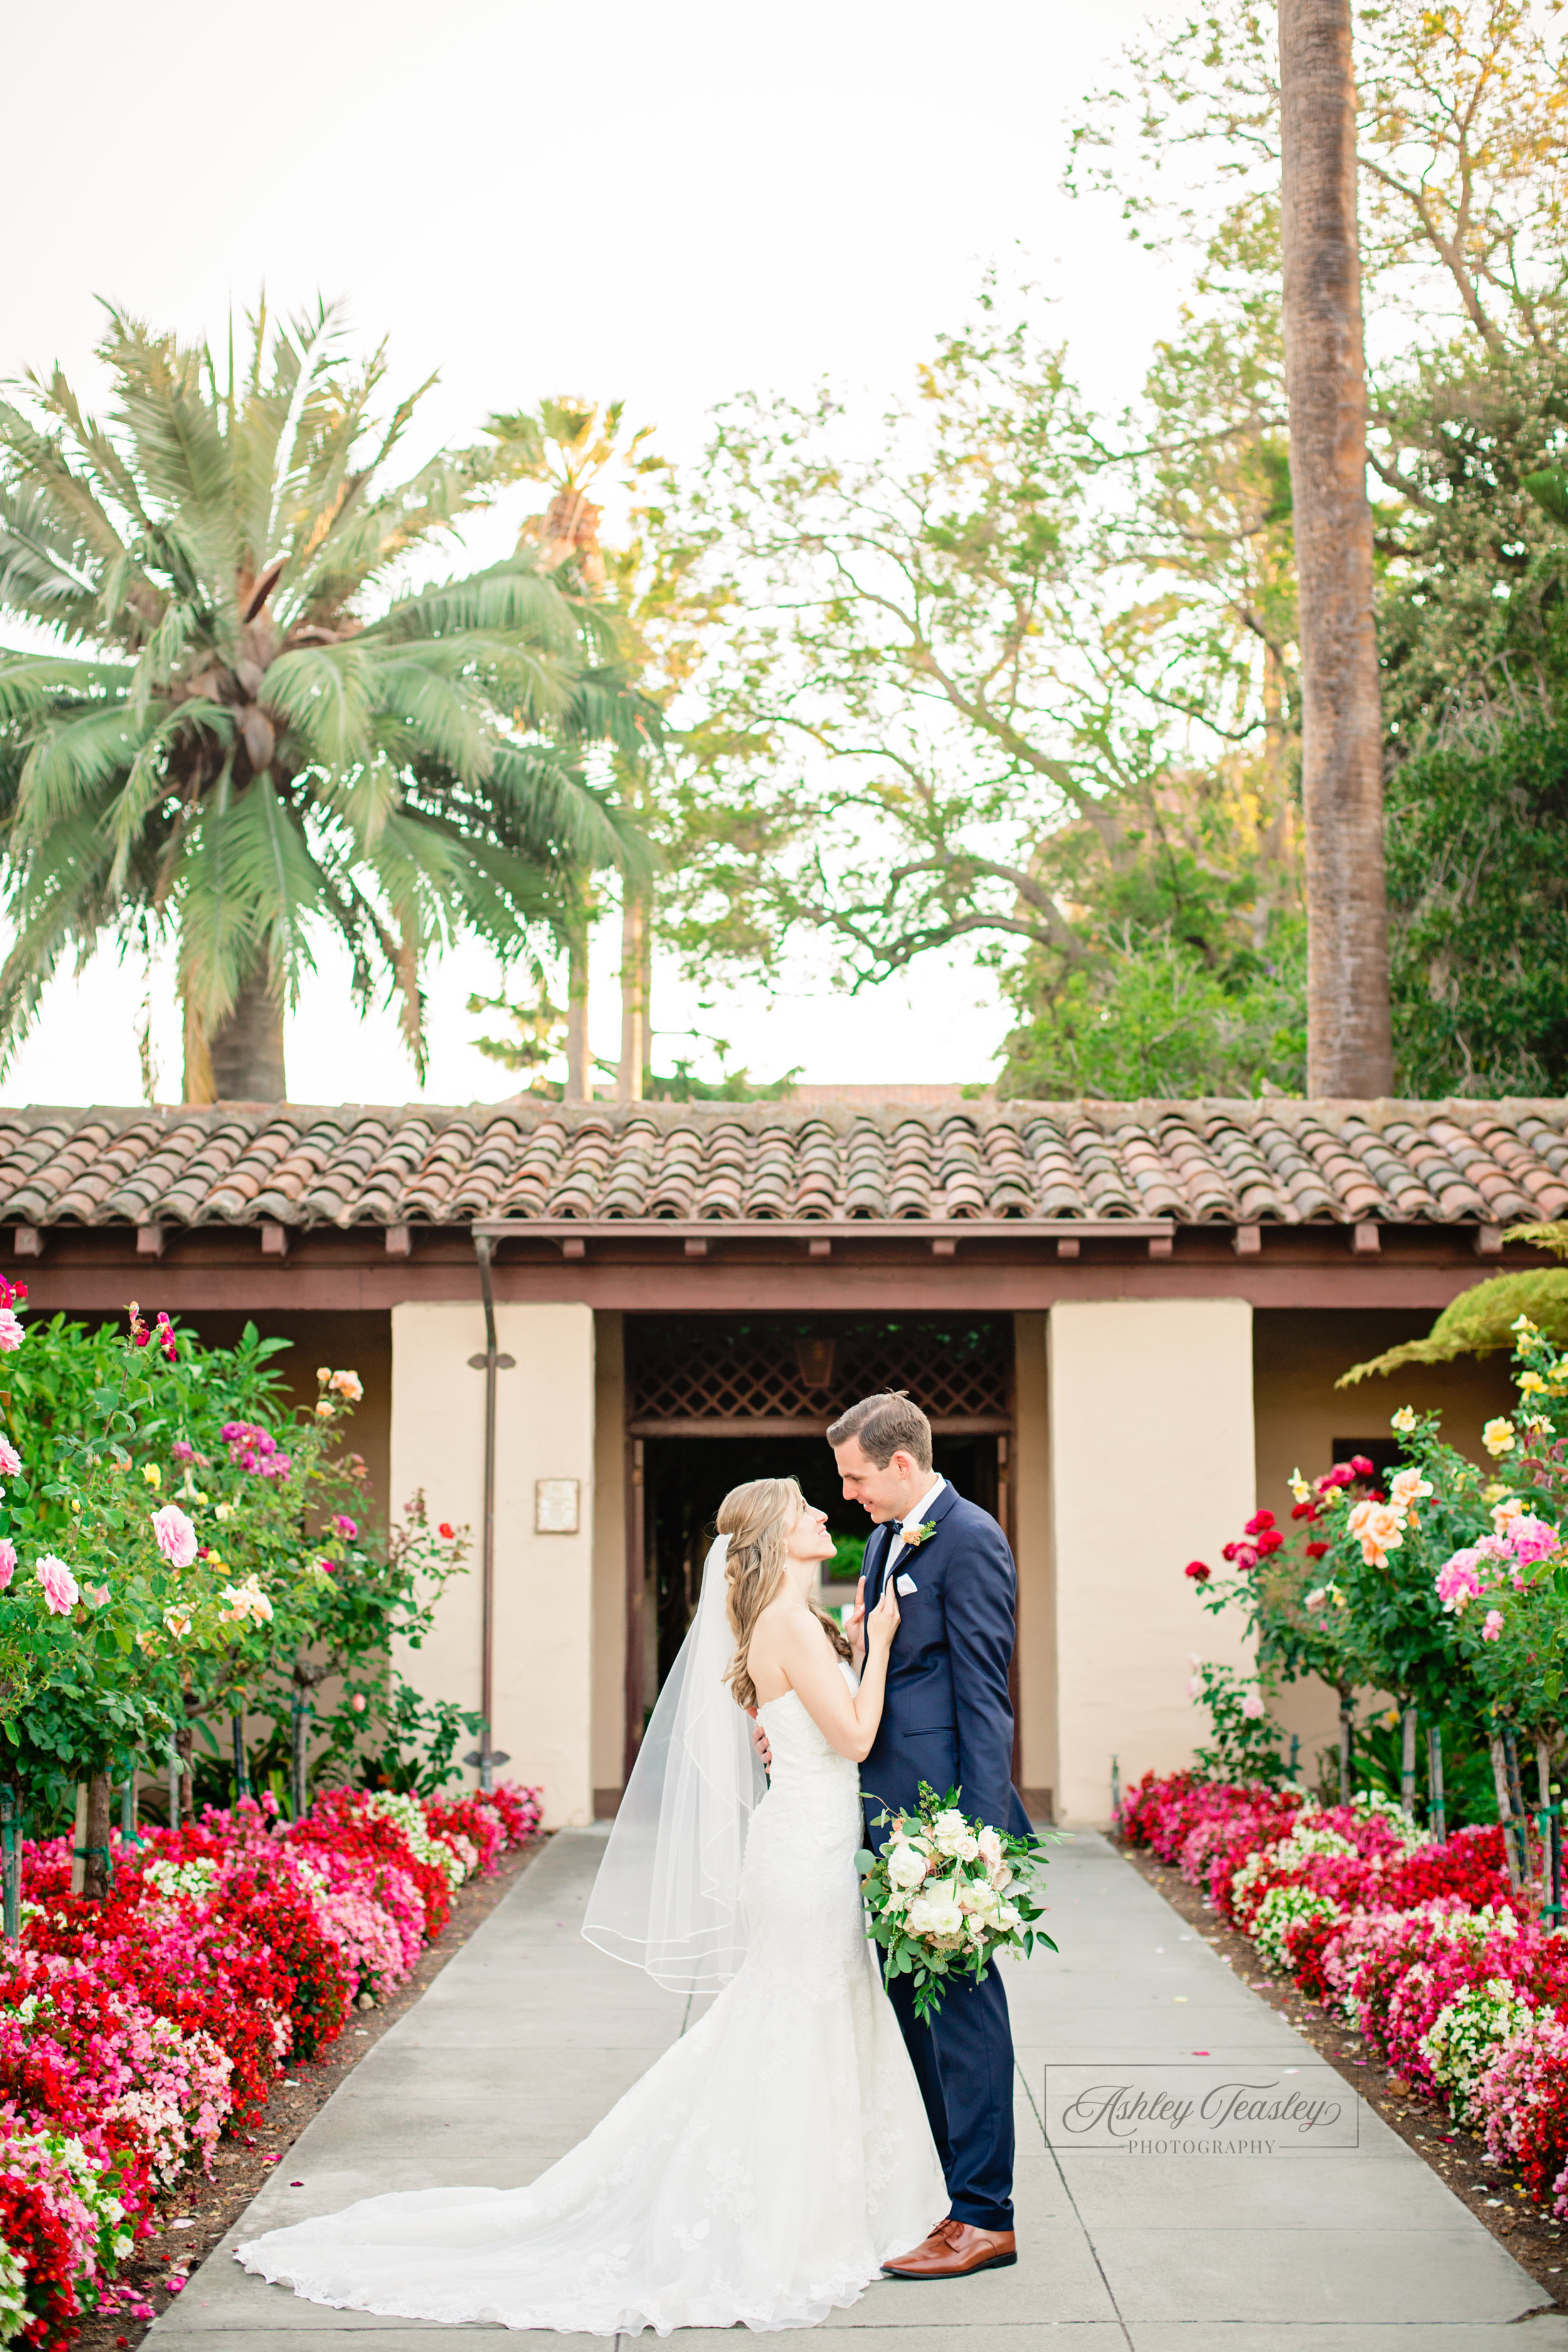 Jenny & David - The Adobe Lodge - Santa Clara University - Sacramento Wedding Photographer - Ashley Teasley Photography (2 of 2).jpg